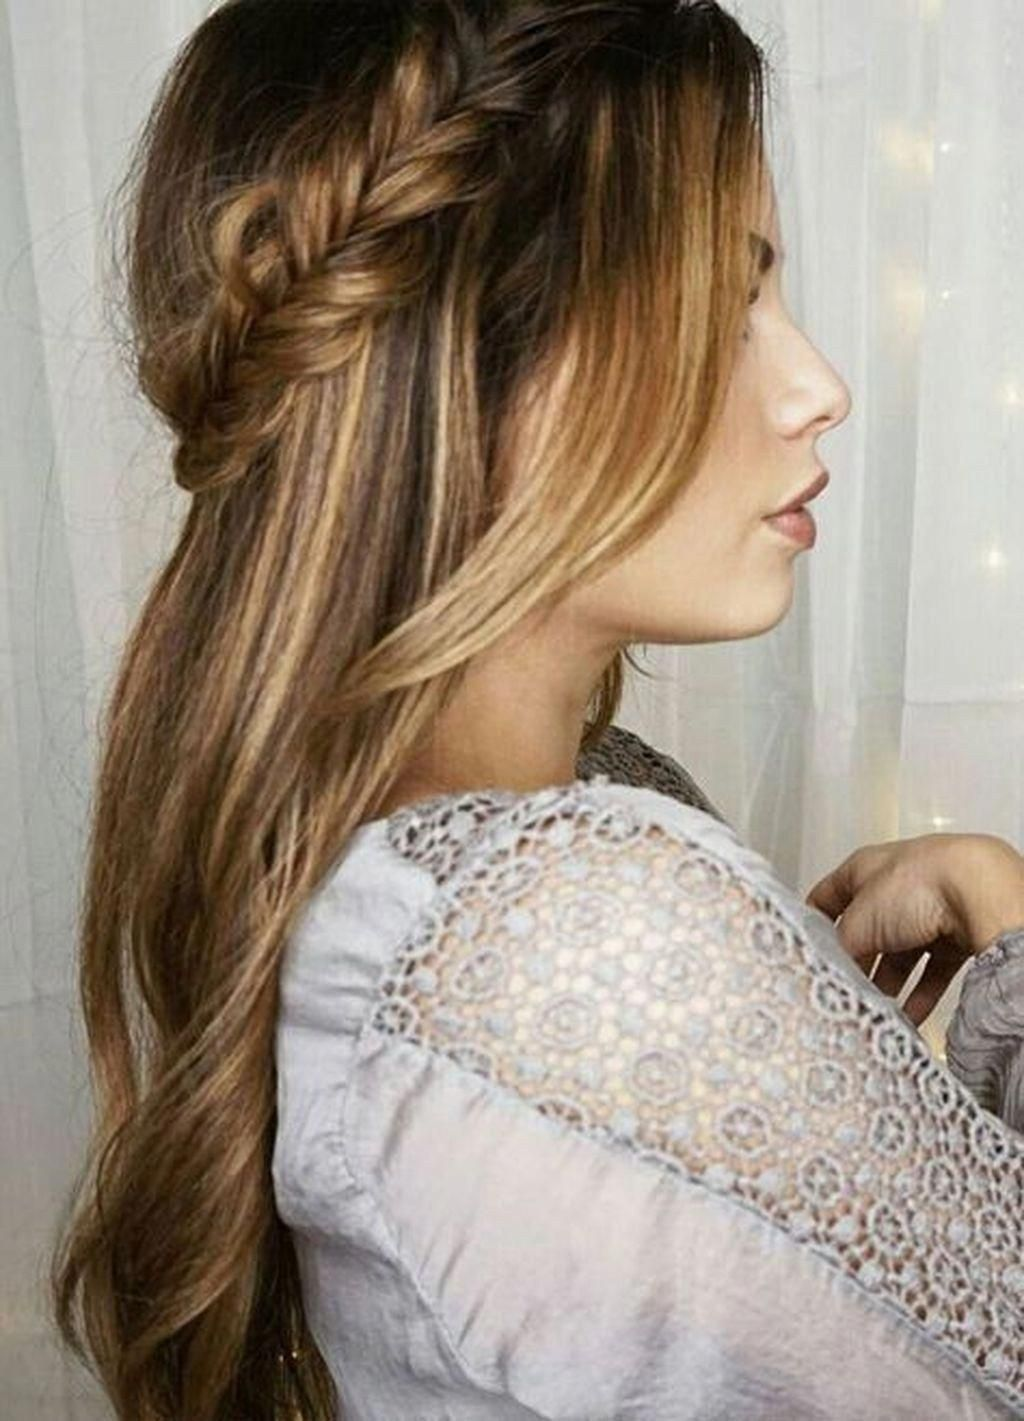 Simple Hairstyles For Long Straight Hair Hairstyles For Girls Hairstyles For Long Silky Hair 20 Medium Length Hair Styles Wedding Hair Down Down Hairstyles